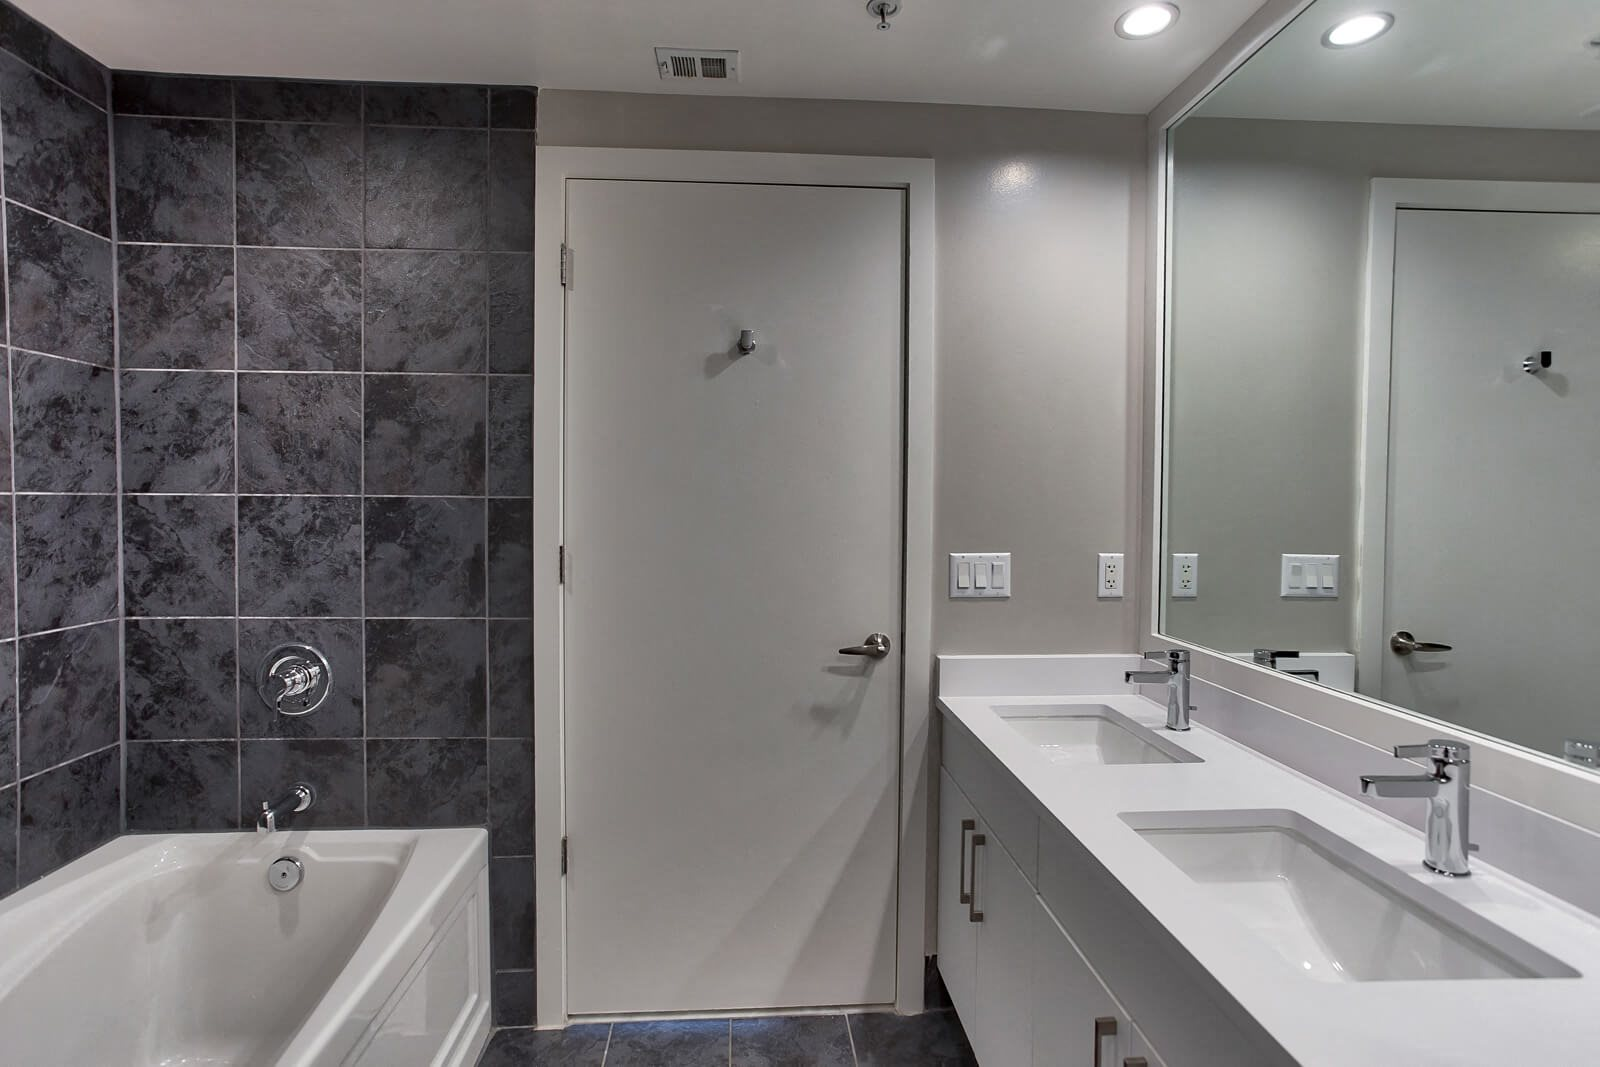 Spacious Bathrooms at IO Piazza by Windsor, Arlington, 22206